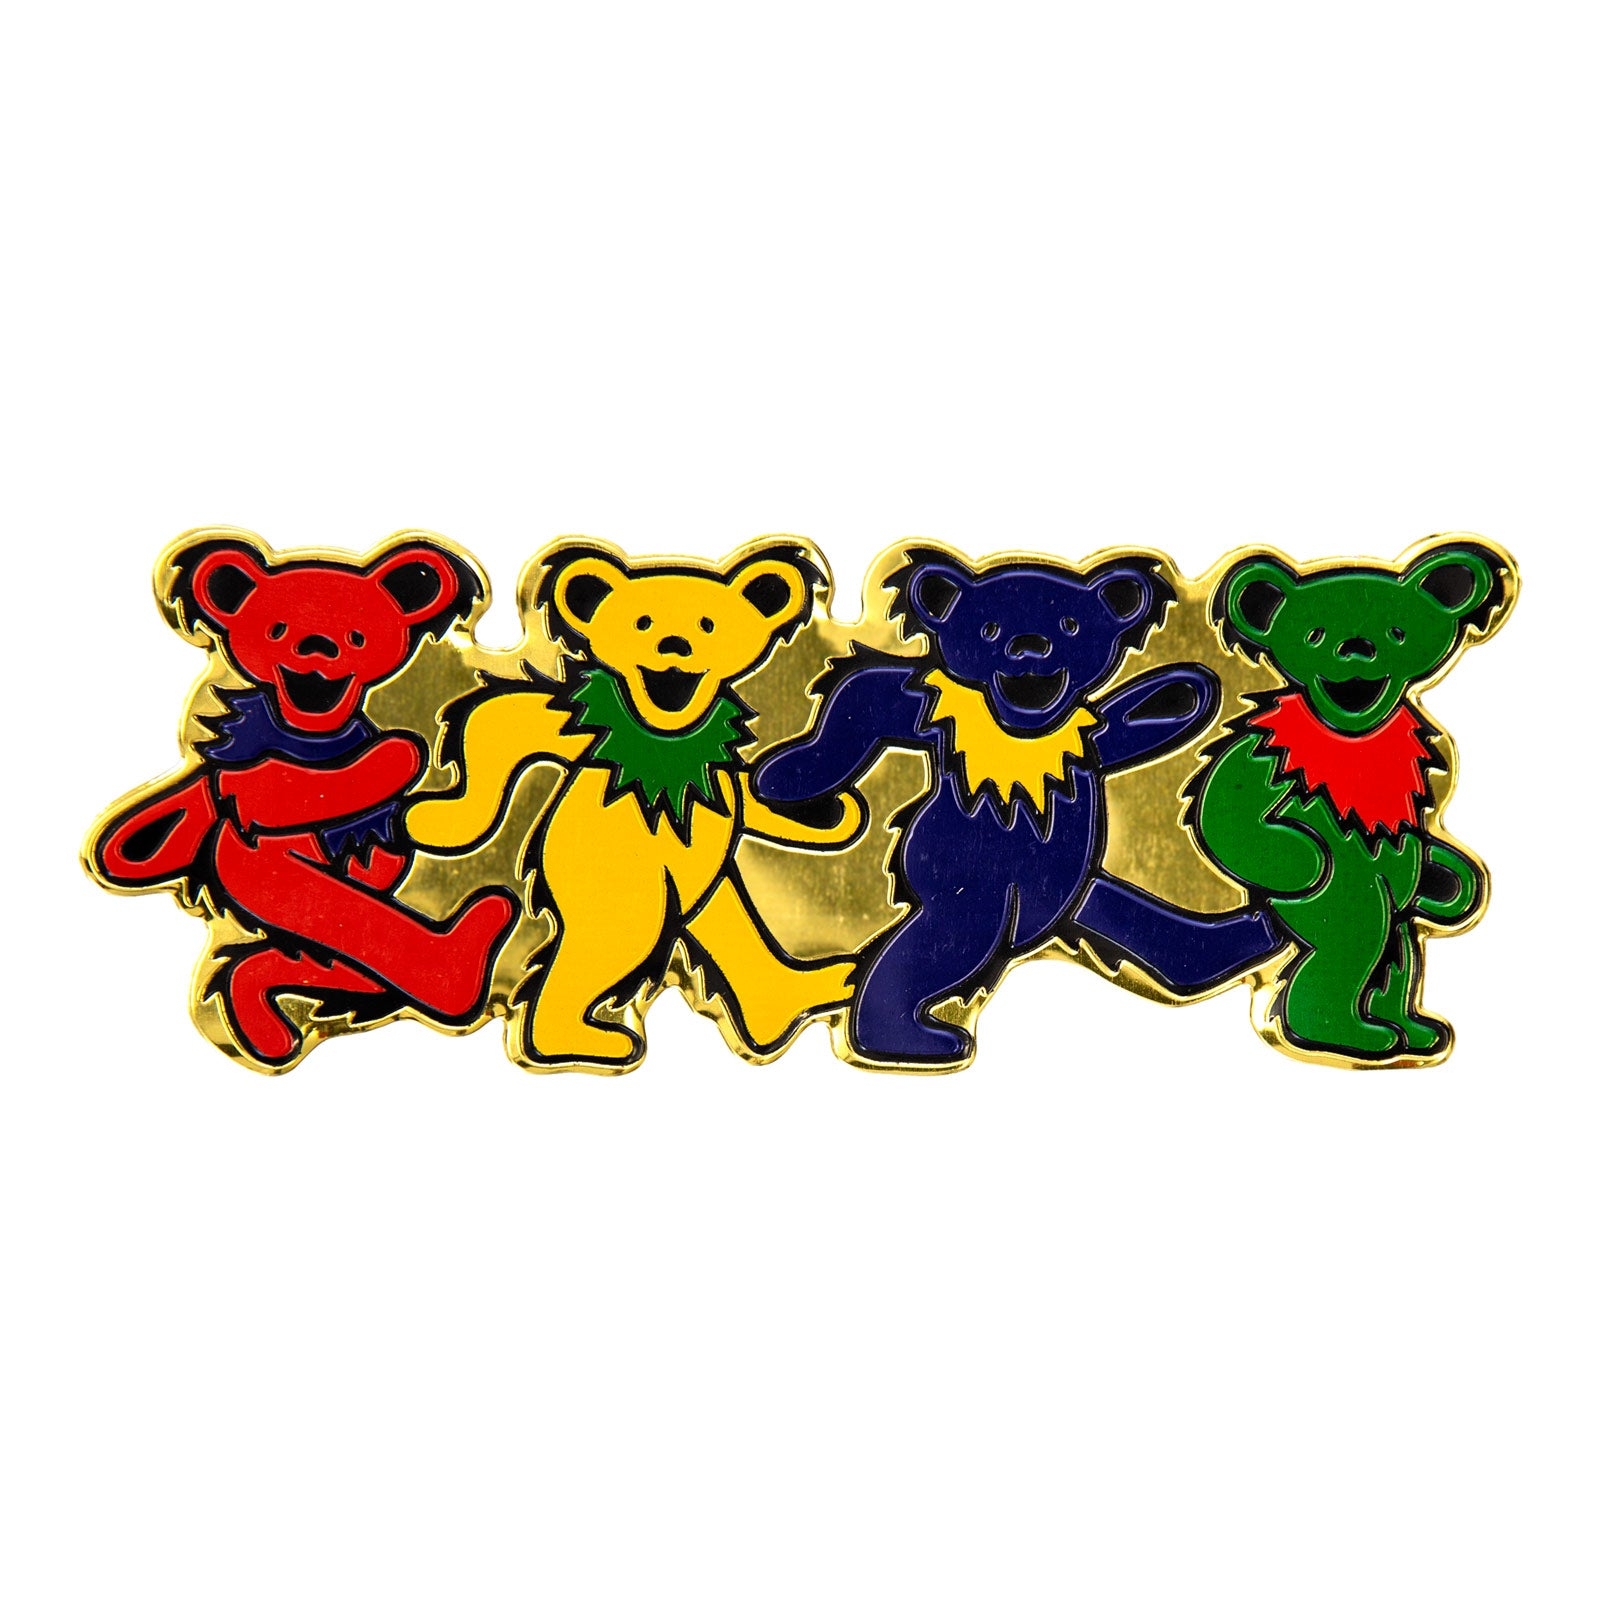 5 X 5 Premium Quality GI Grateful Dead Dancing Bear Decal Sticker Vinyl American Rock Band Decal